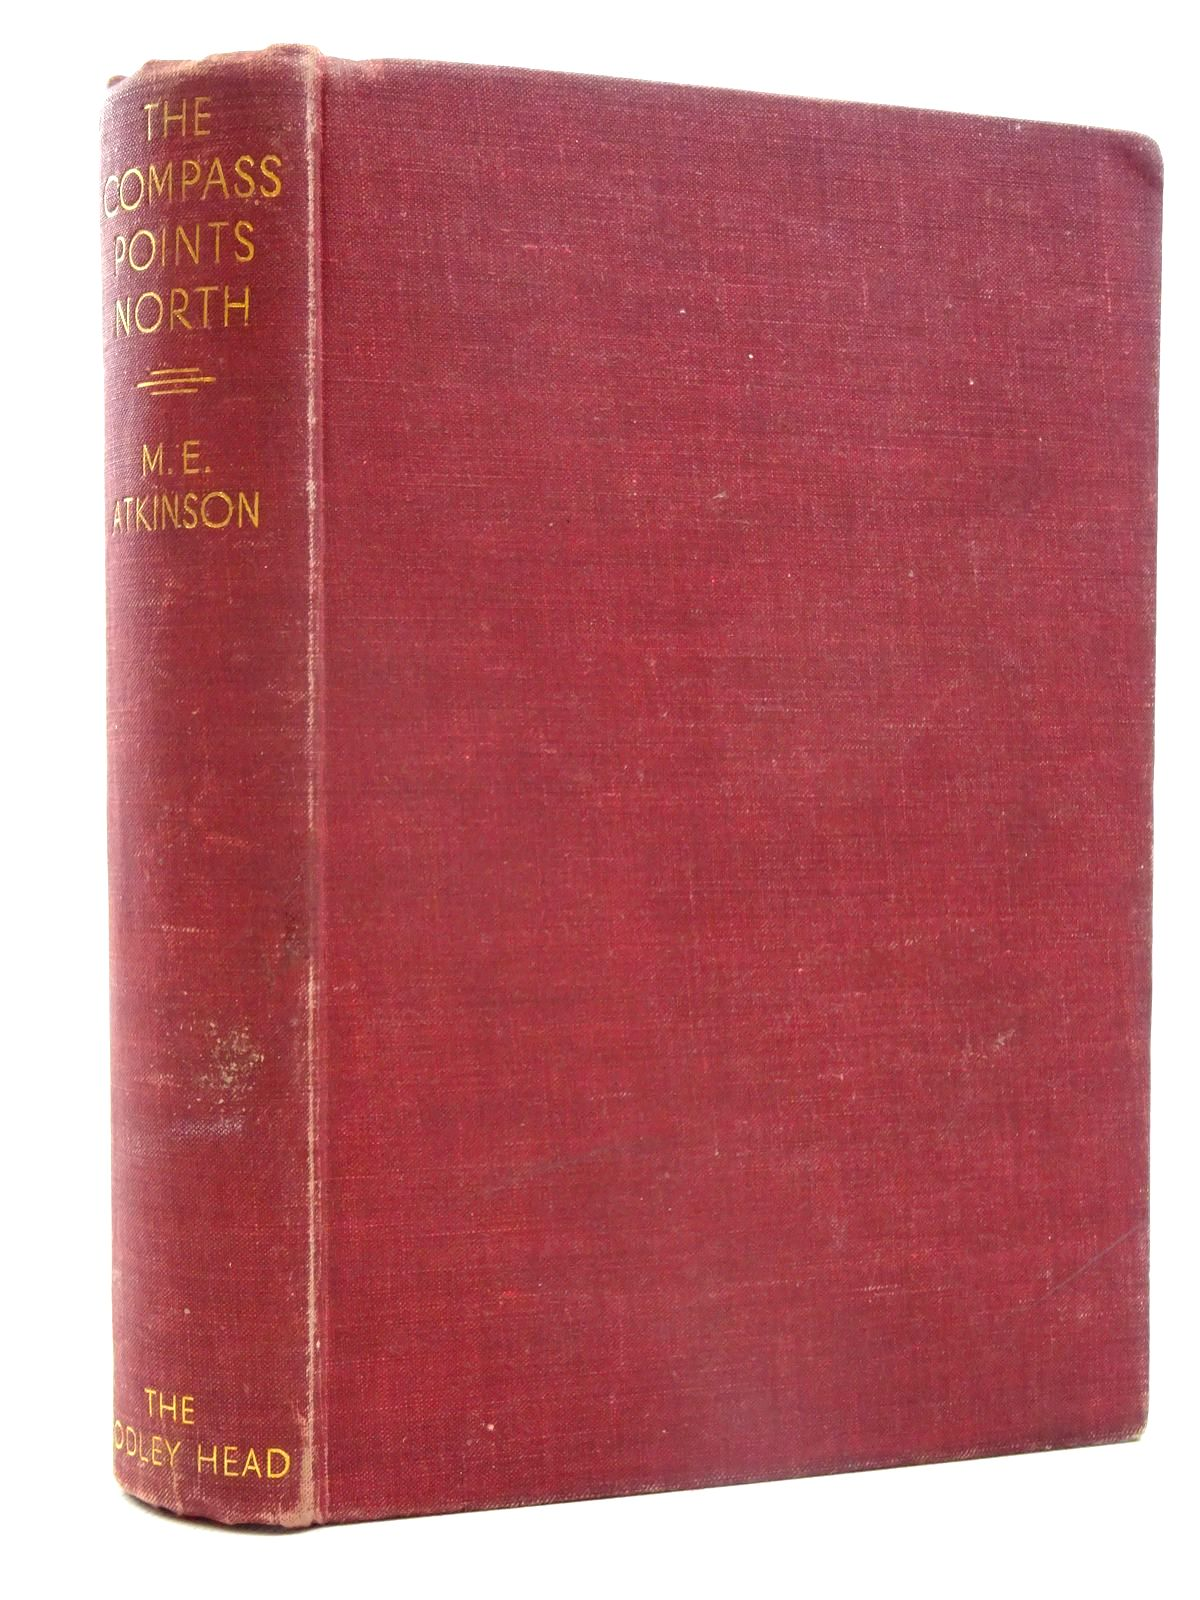 Photo of THE COMPASS POINTS NORTH written by Atkinson, M.E. illustrated by Jones, Harold published by John Lane The Bodley Head (STOCK CODE: 2125706)  for sale by Stella & Rose's Books